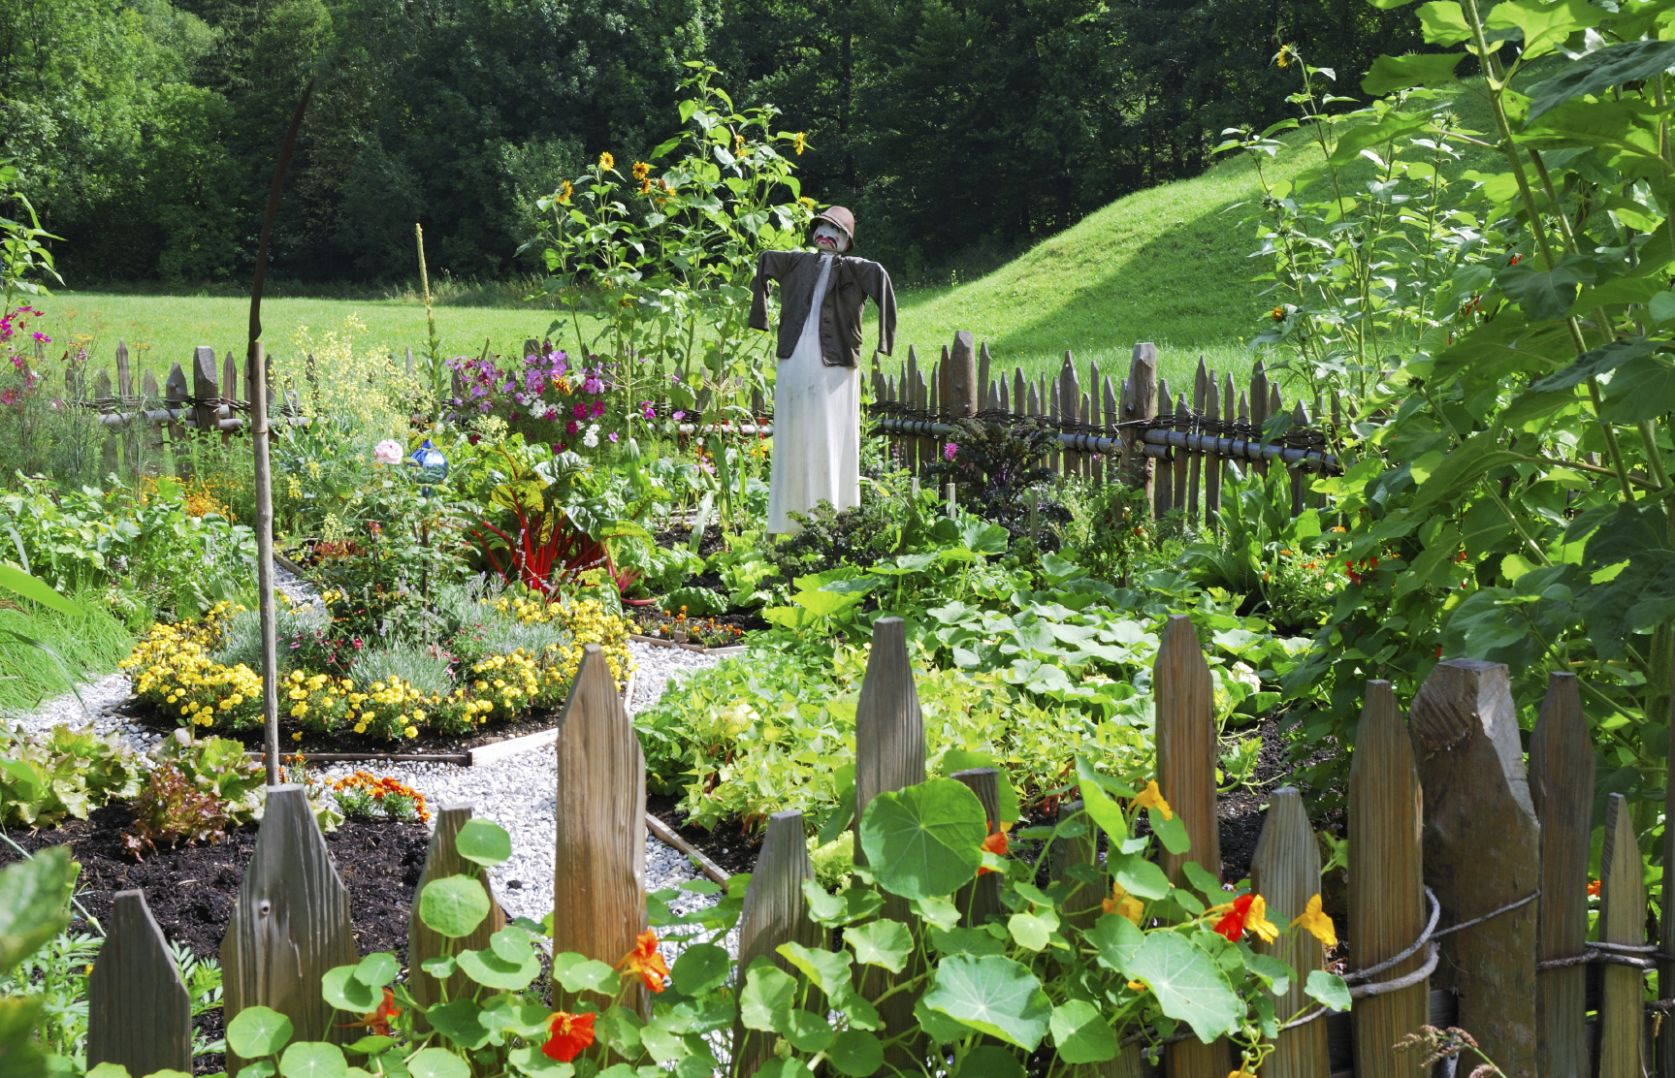 Vegetable Garden Design - Ideas For Designing A Vegetable Garden - garden ideas vegetable